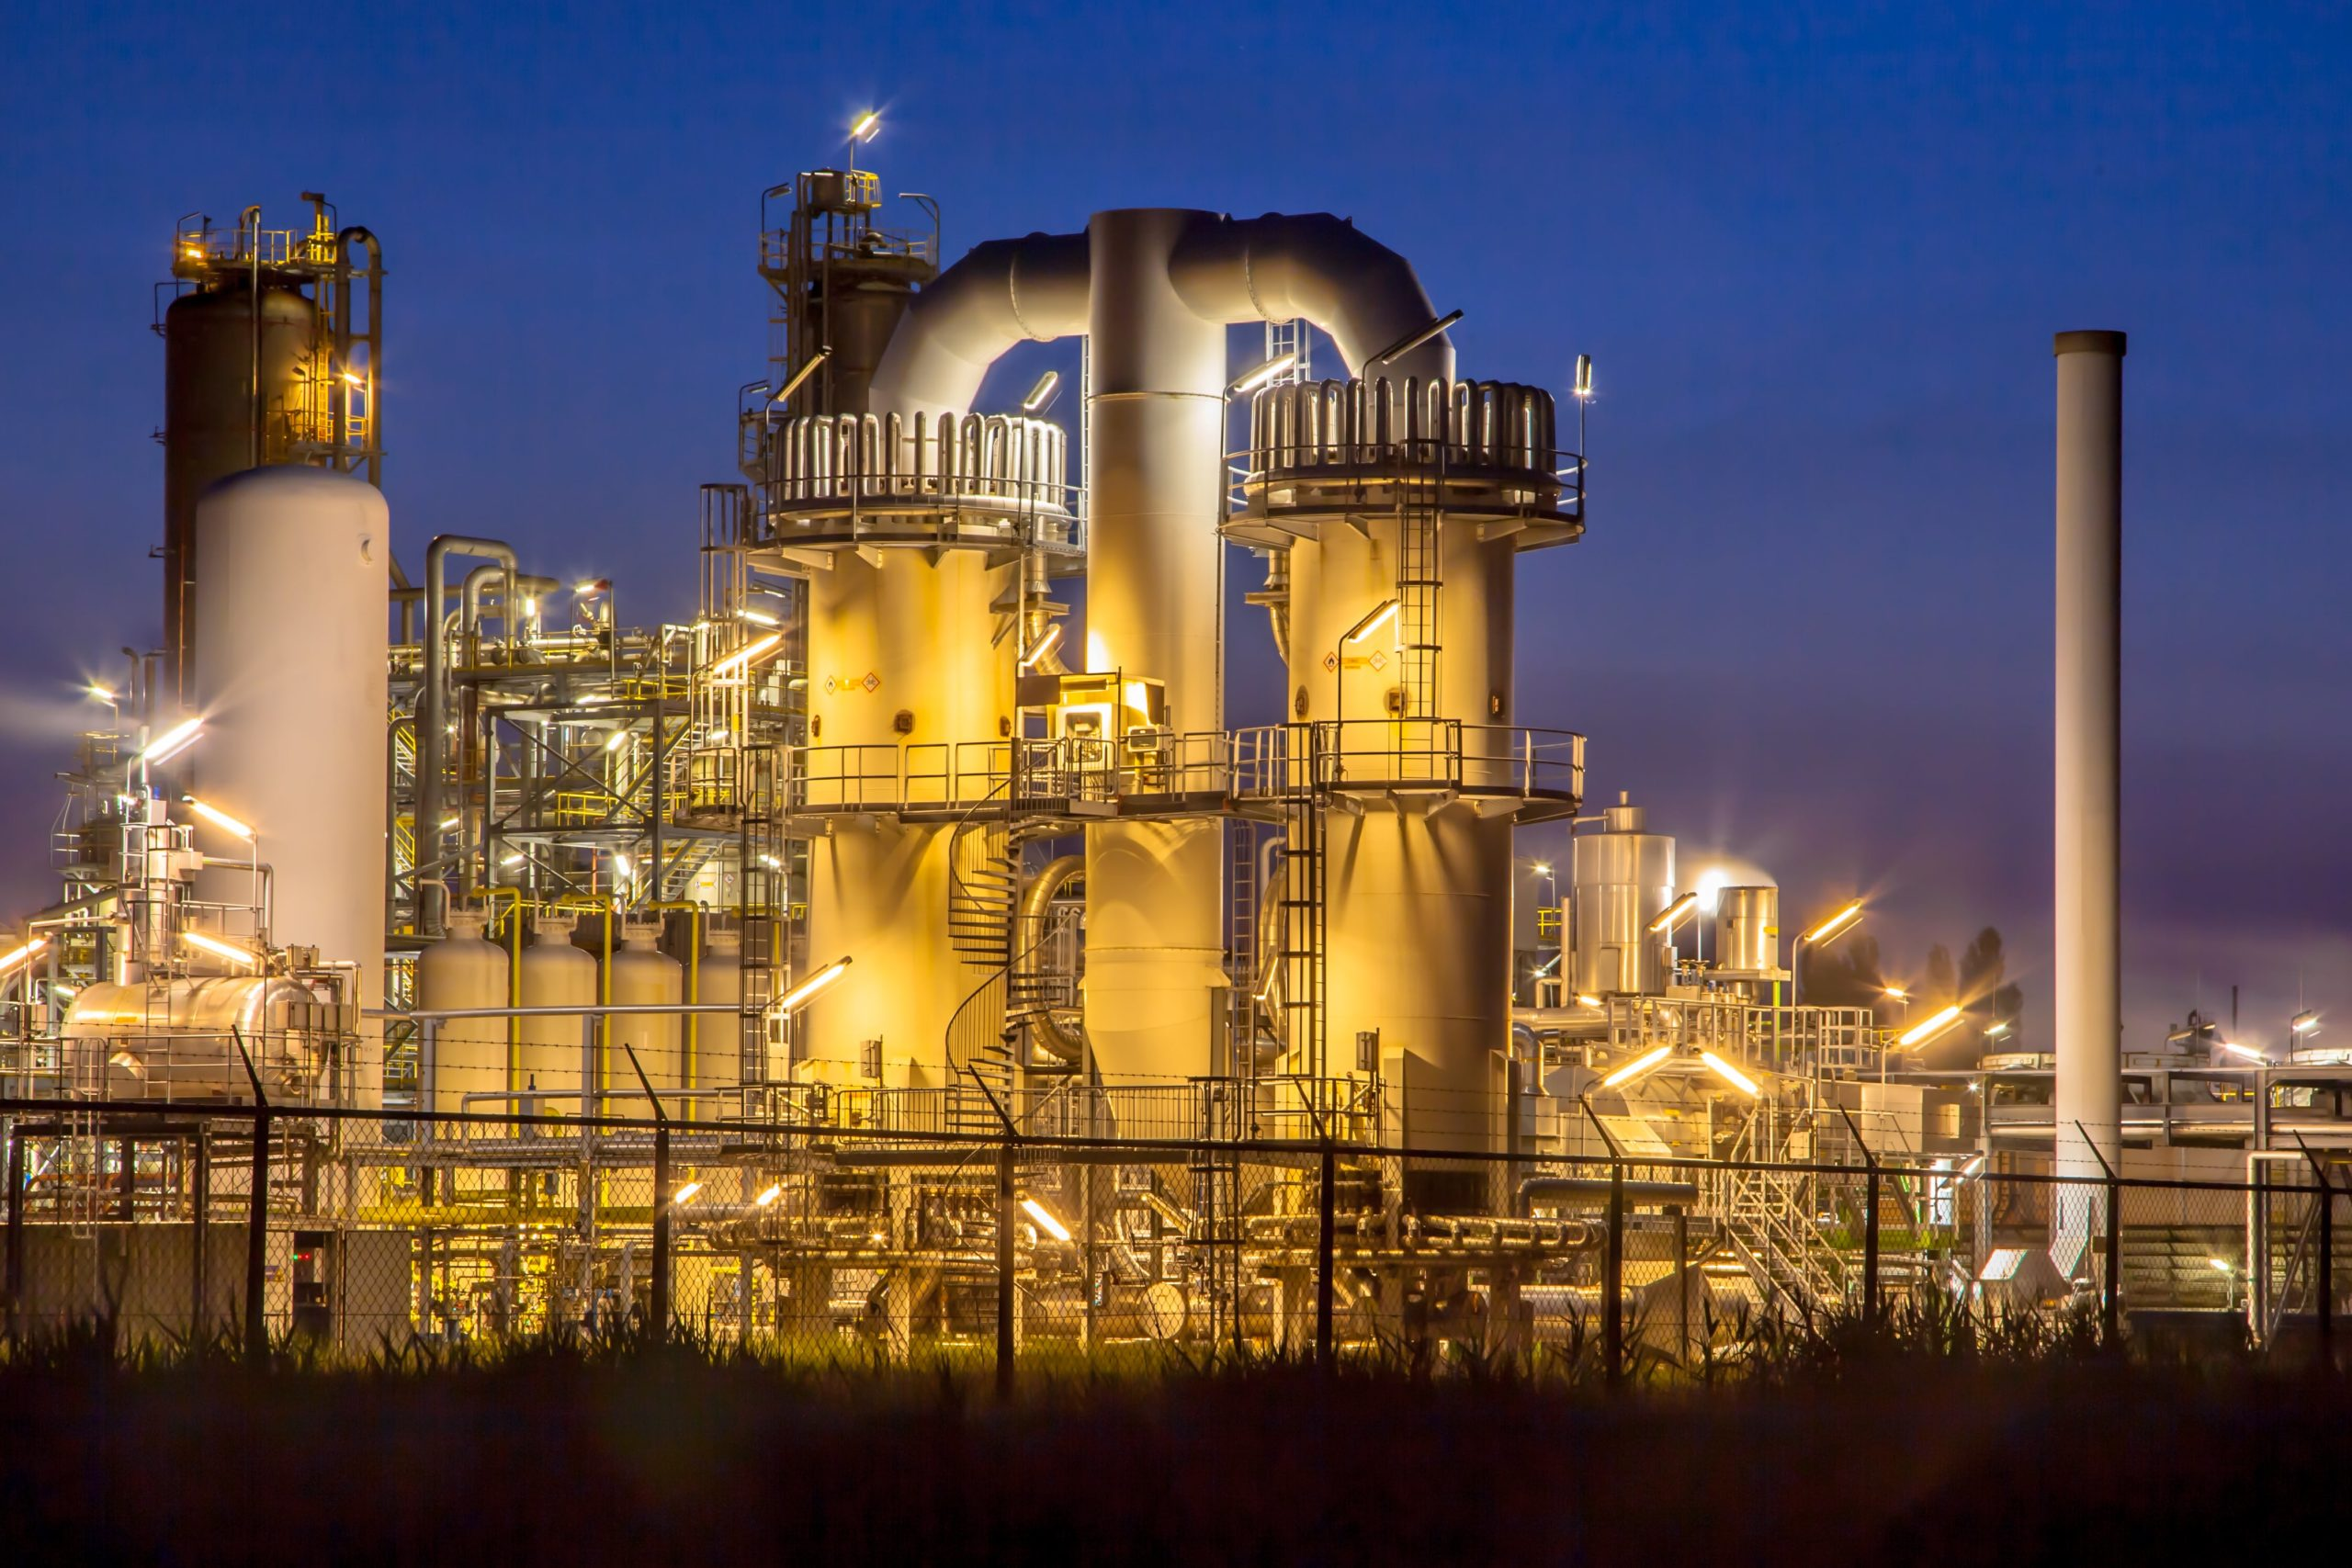 heavy-industrial-chemical-factory-at-night-PNU7XAK-min